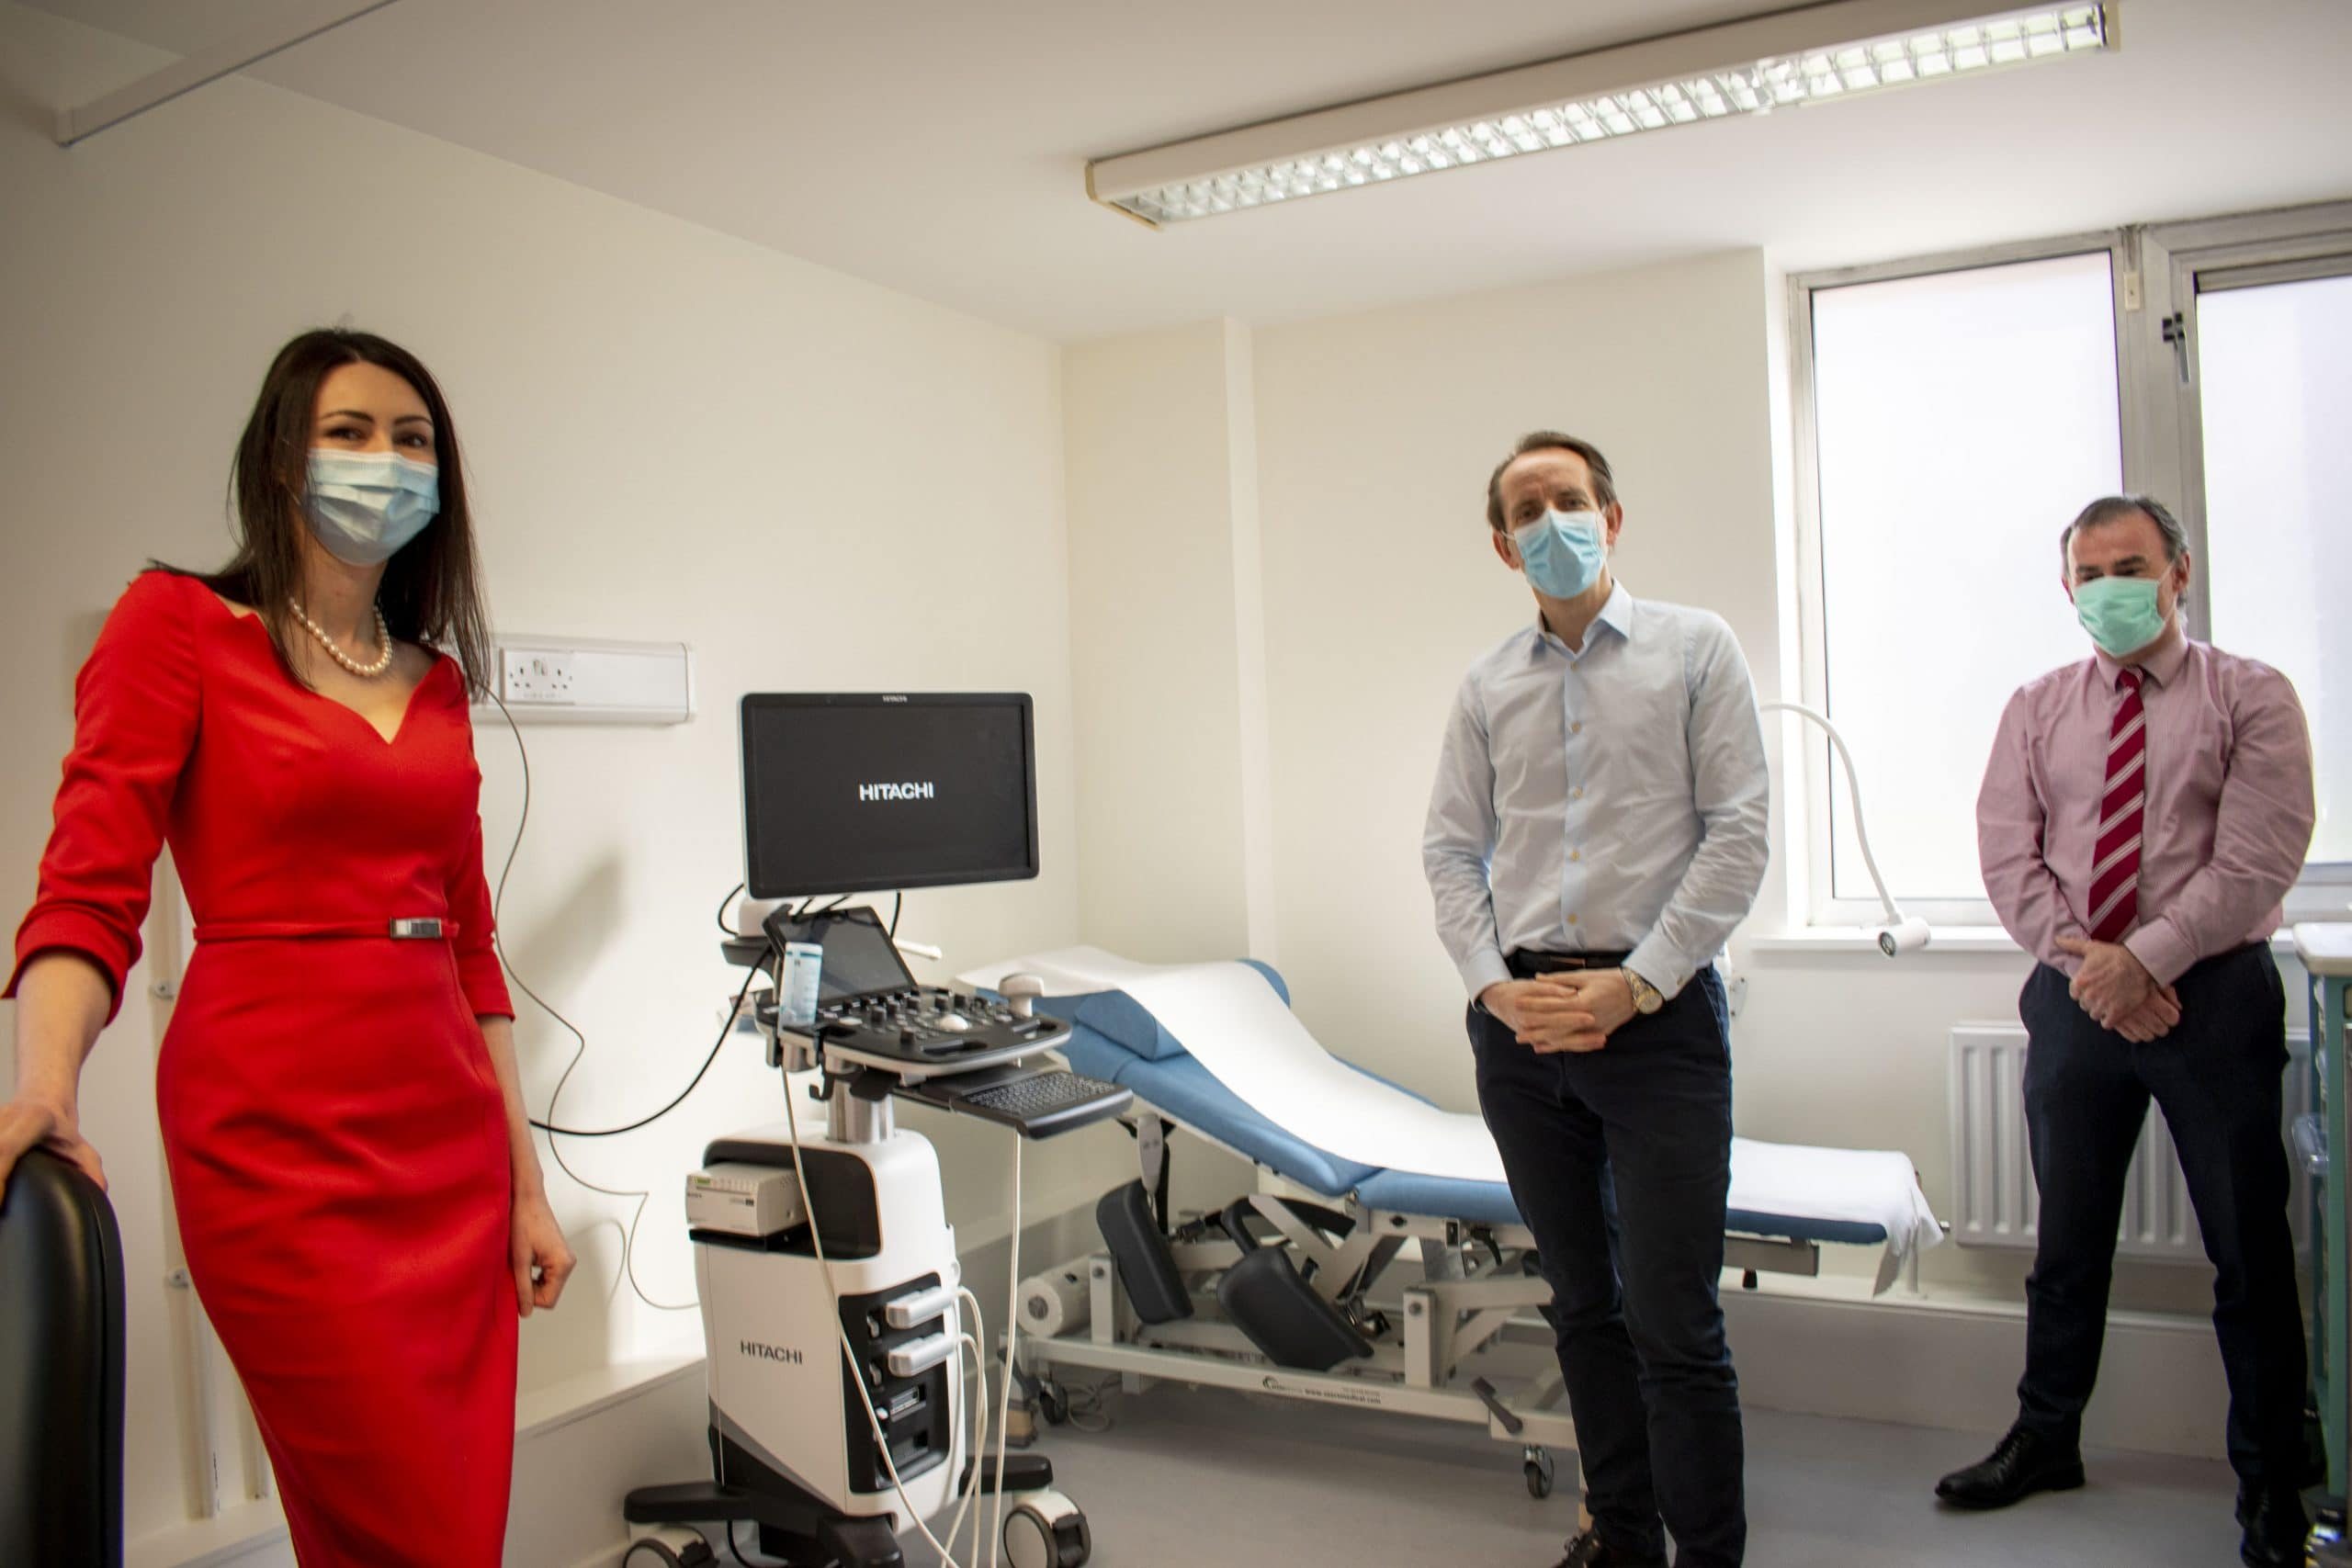 New Gynaecology unit opened at the Rotunda Hospital to provide increased access to vital services